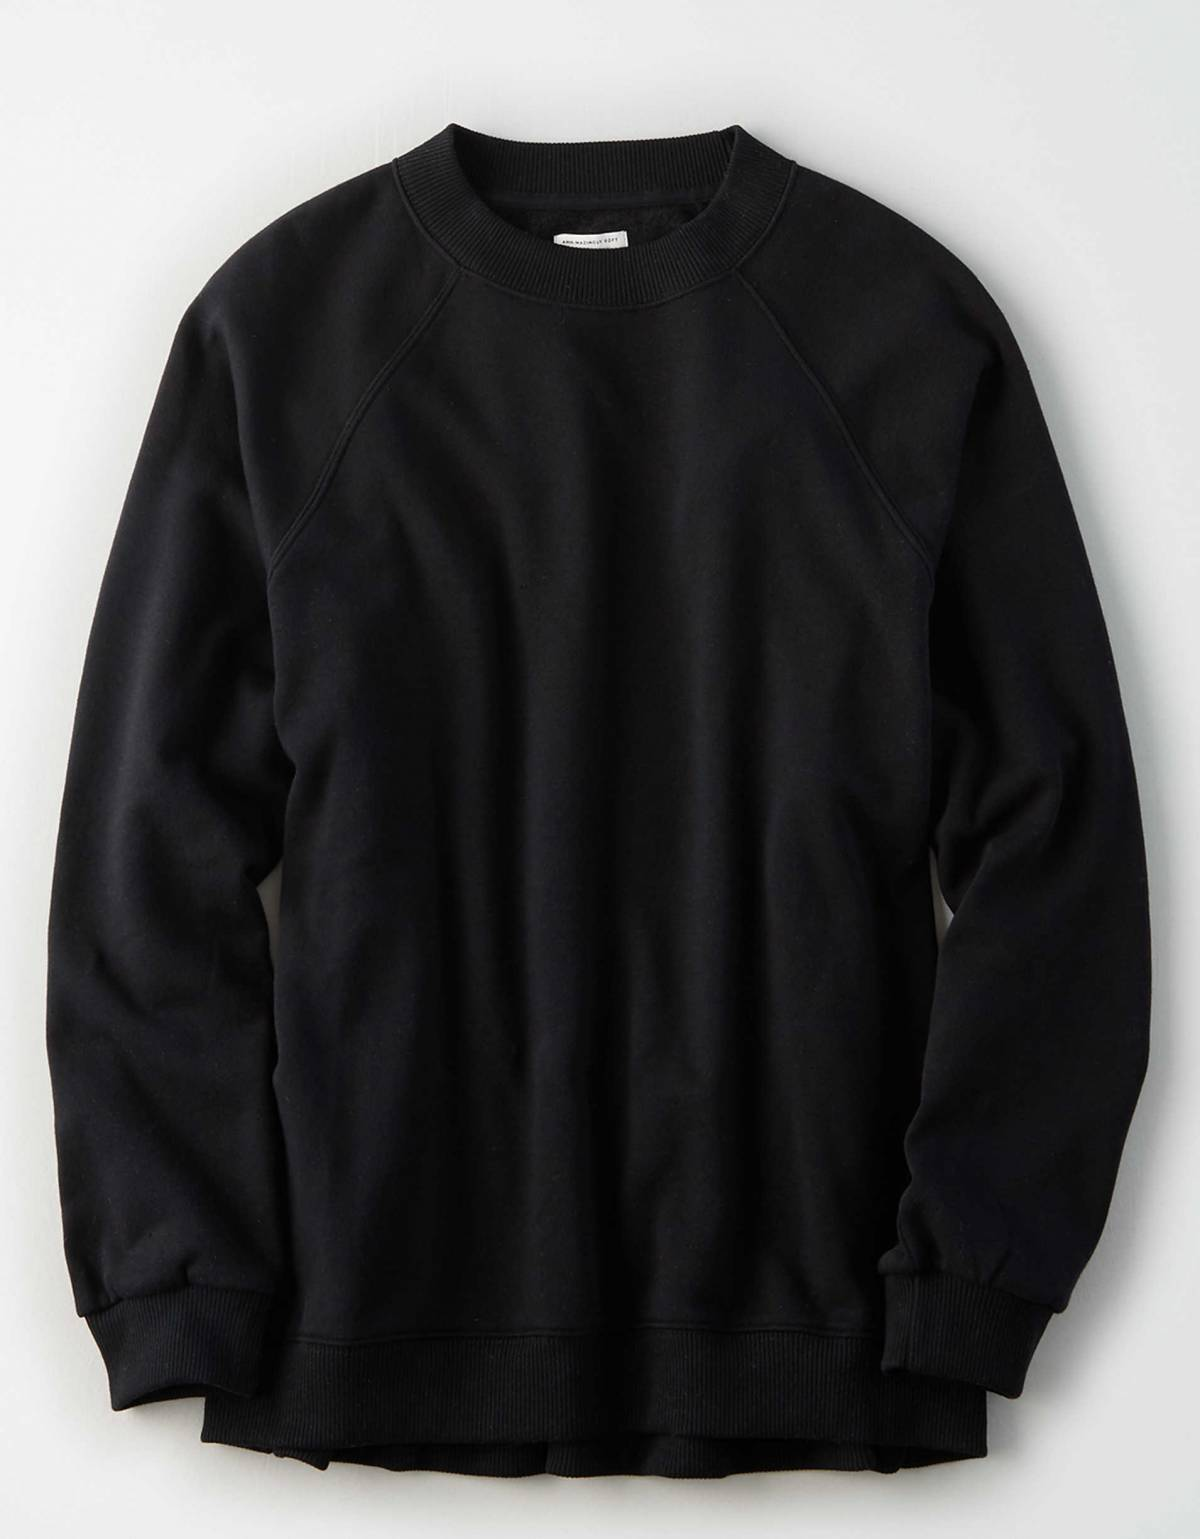 ae-sweater